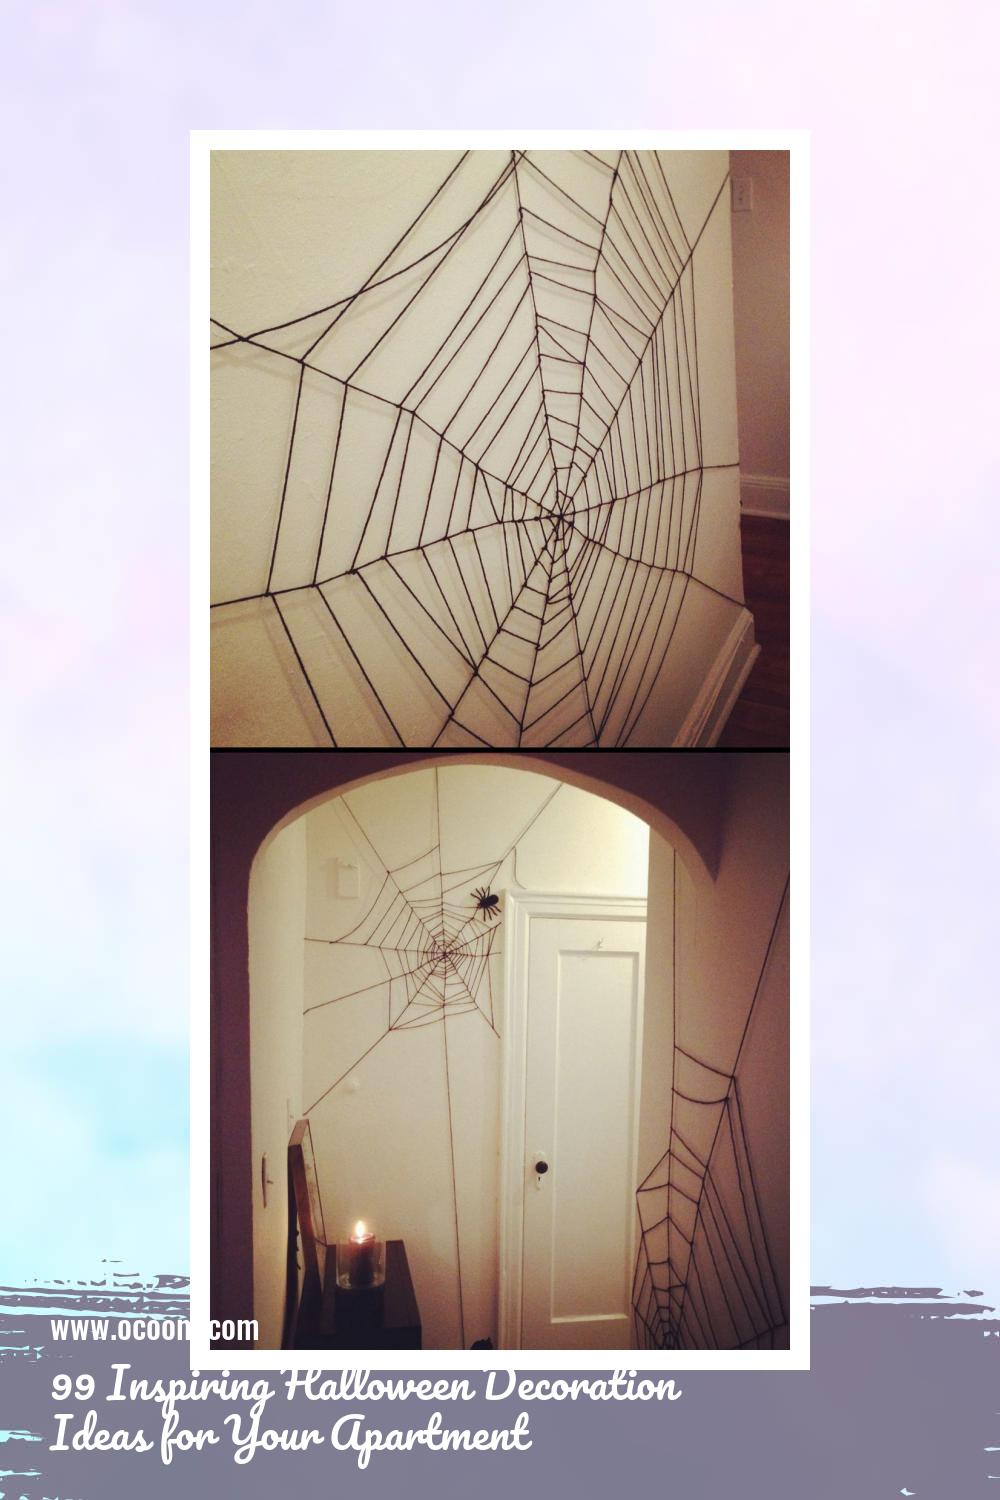 99 Inspiring Halloween Decoration Ideas for Your Apartment 26